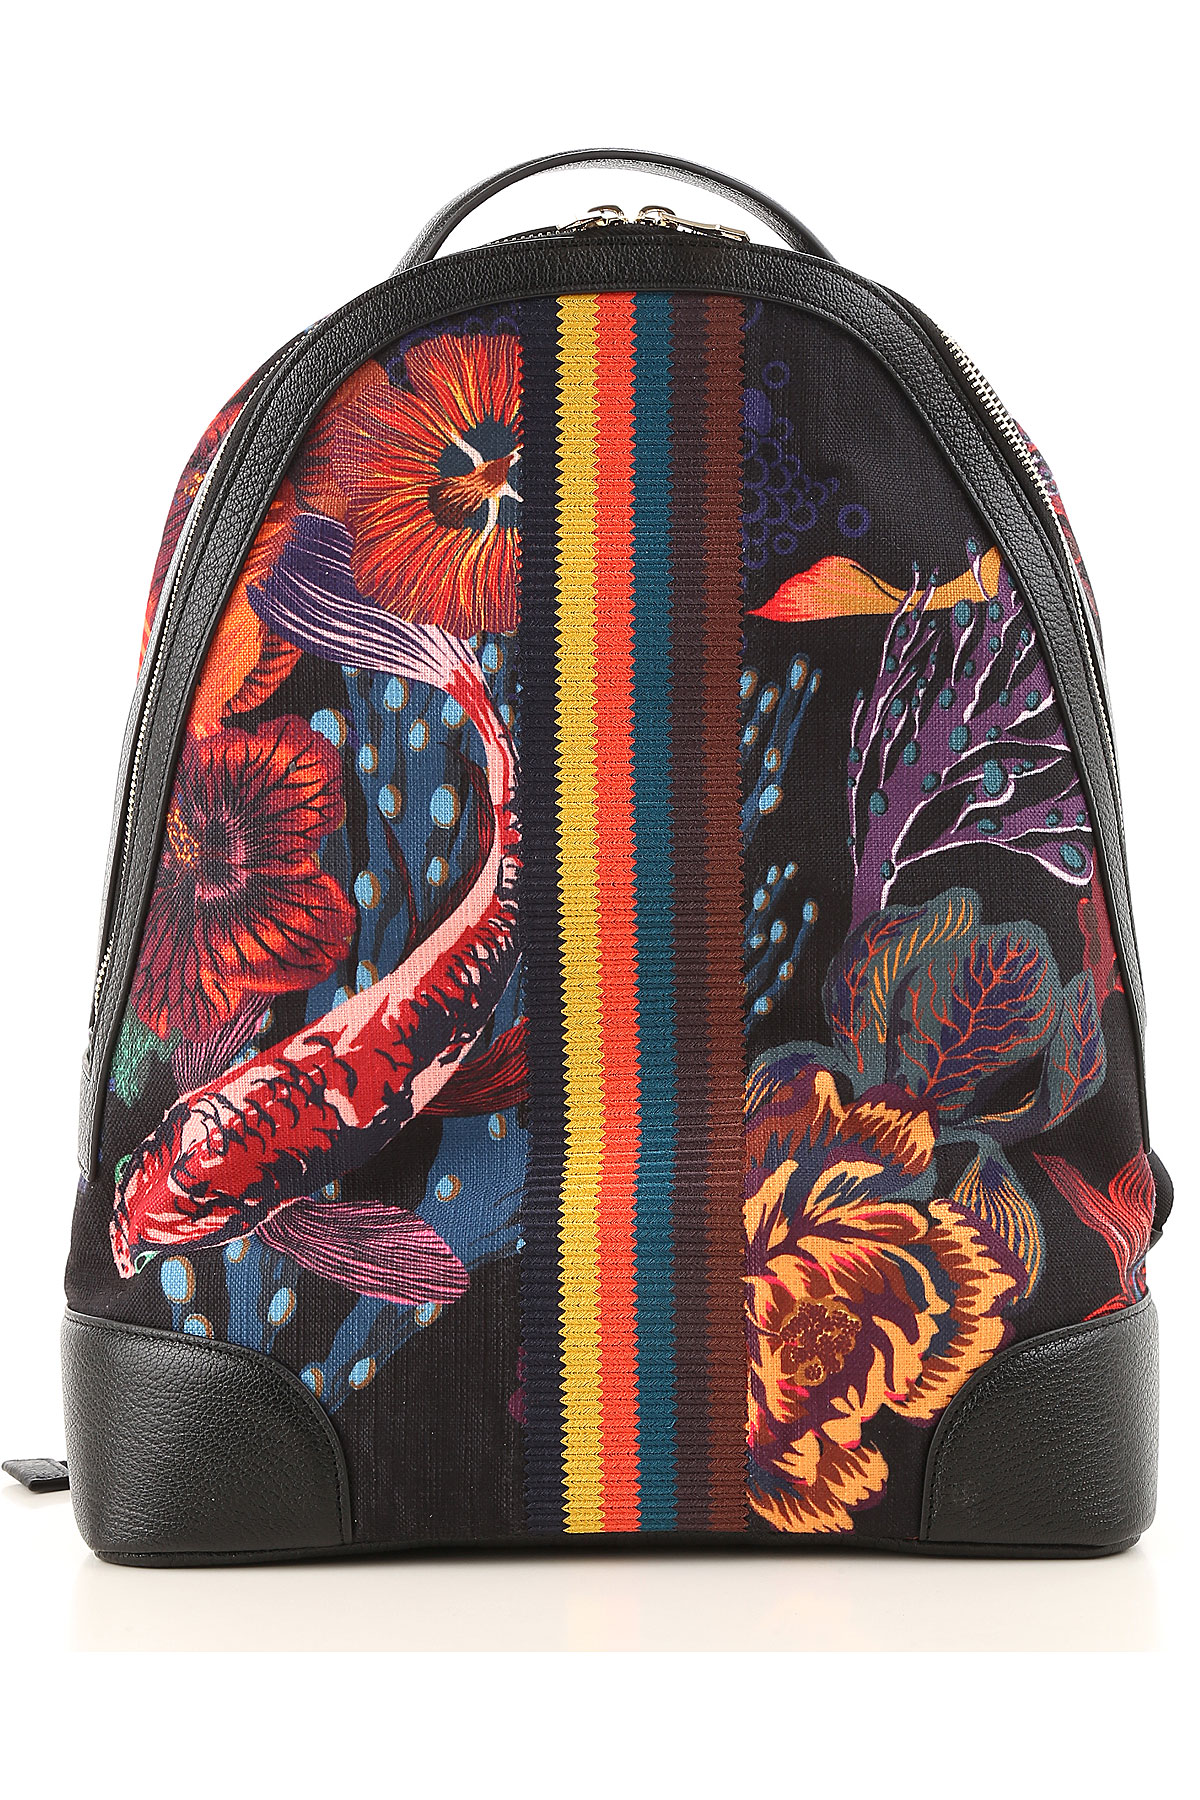 Image of Paul Smith Backpack for Men, Black, Canvas, 2017